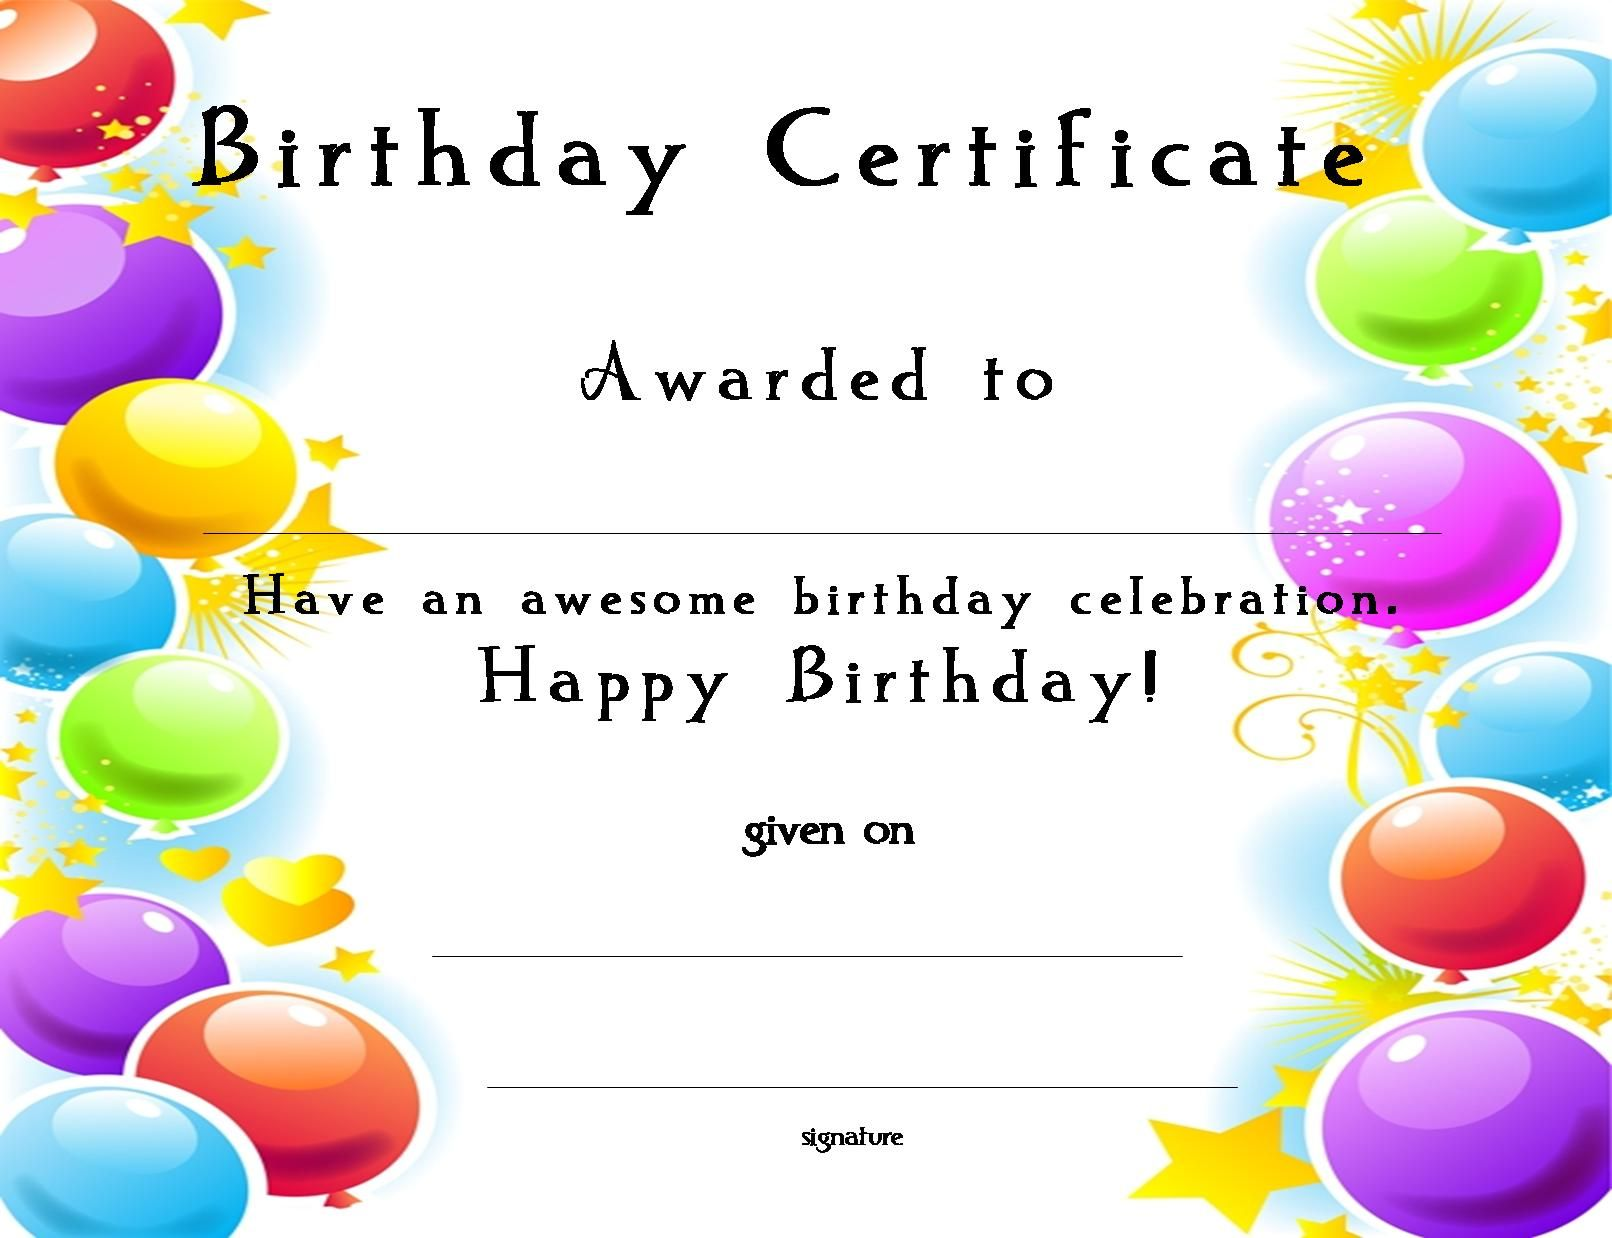 Certificatetemplate happy birthday certificate for your kids certificate template for kids free printable certificate templates birthday certificate templatesawesome site for bday and other free certificates for yadclub Choice Image